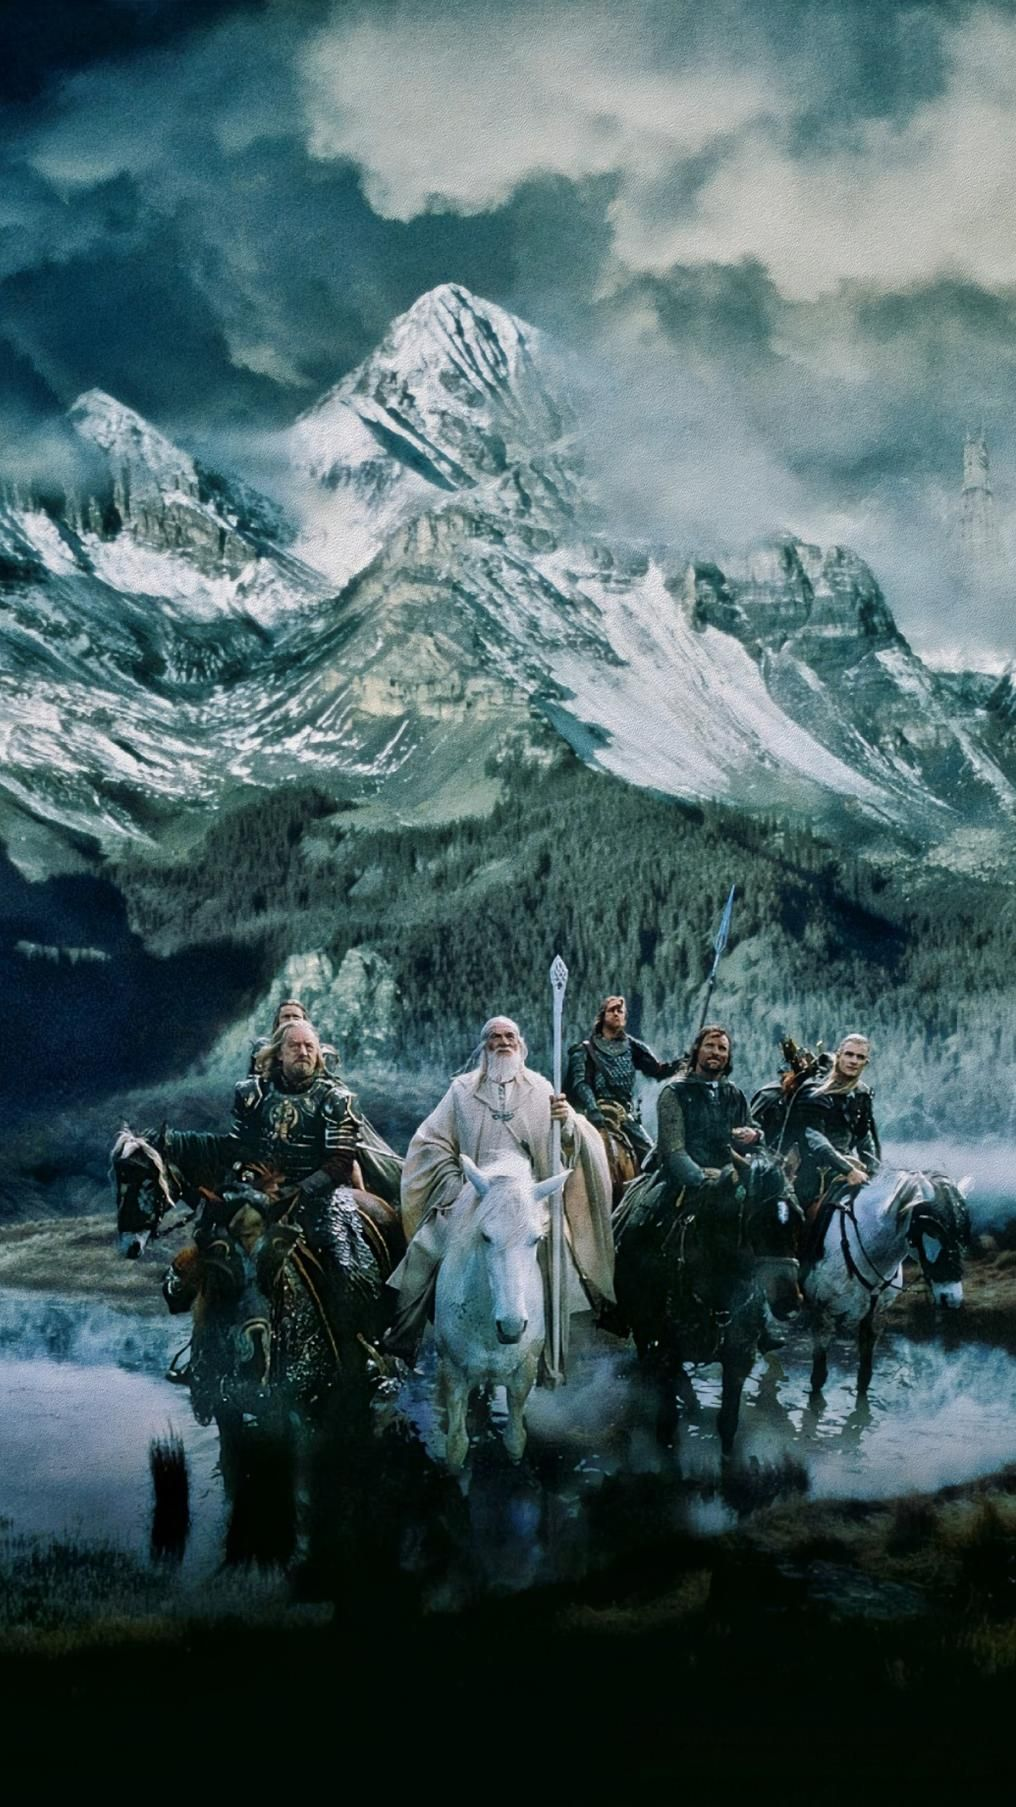 Обои по теме The Lord of the Rings